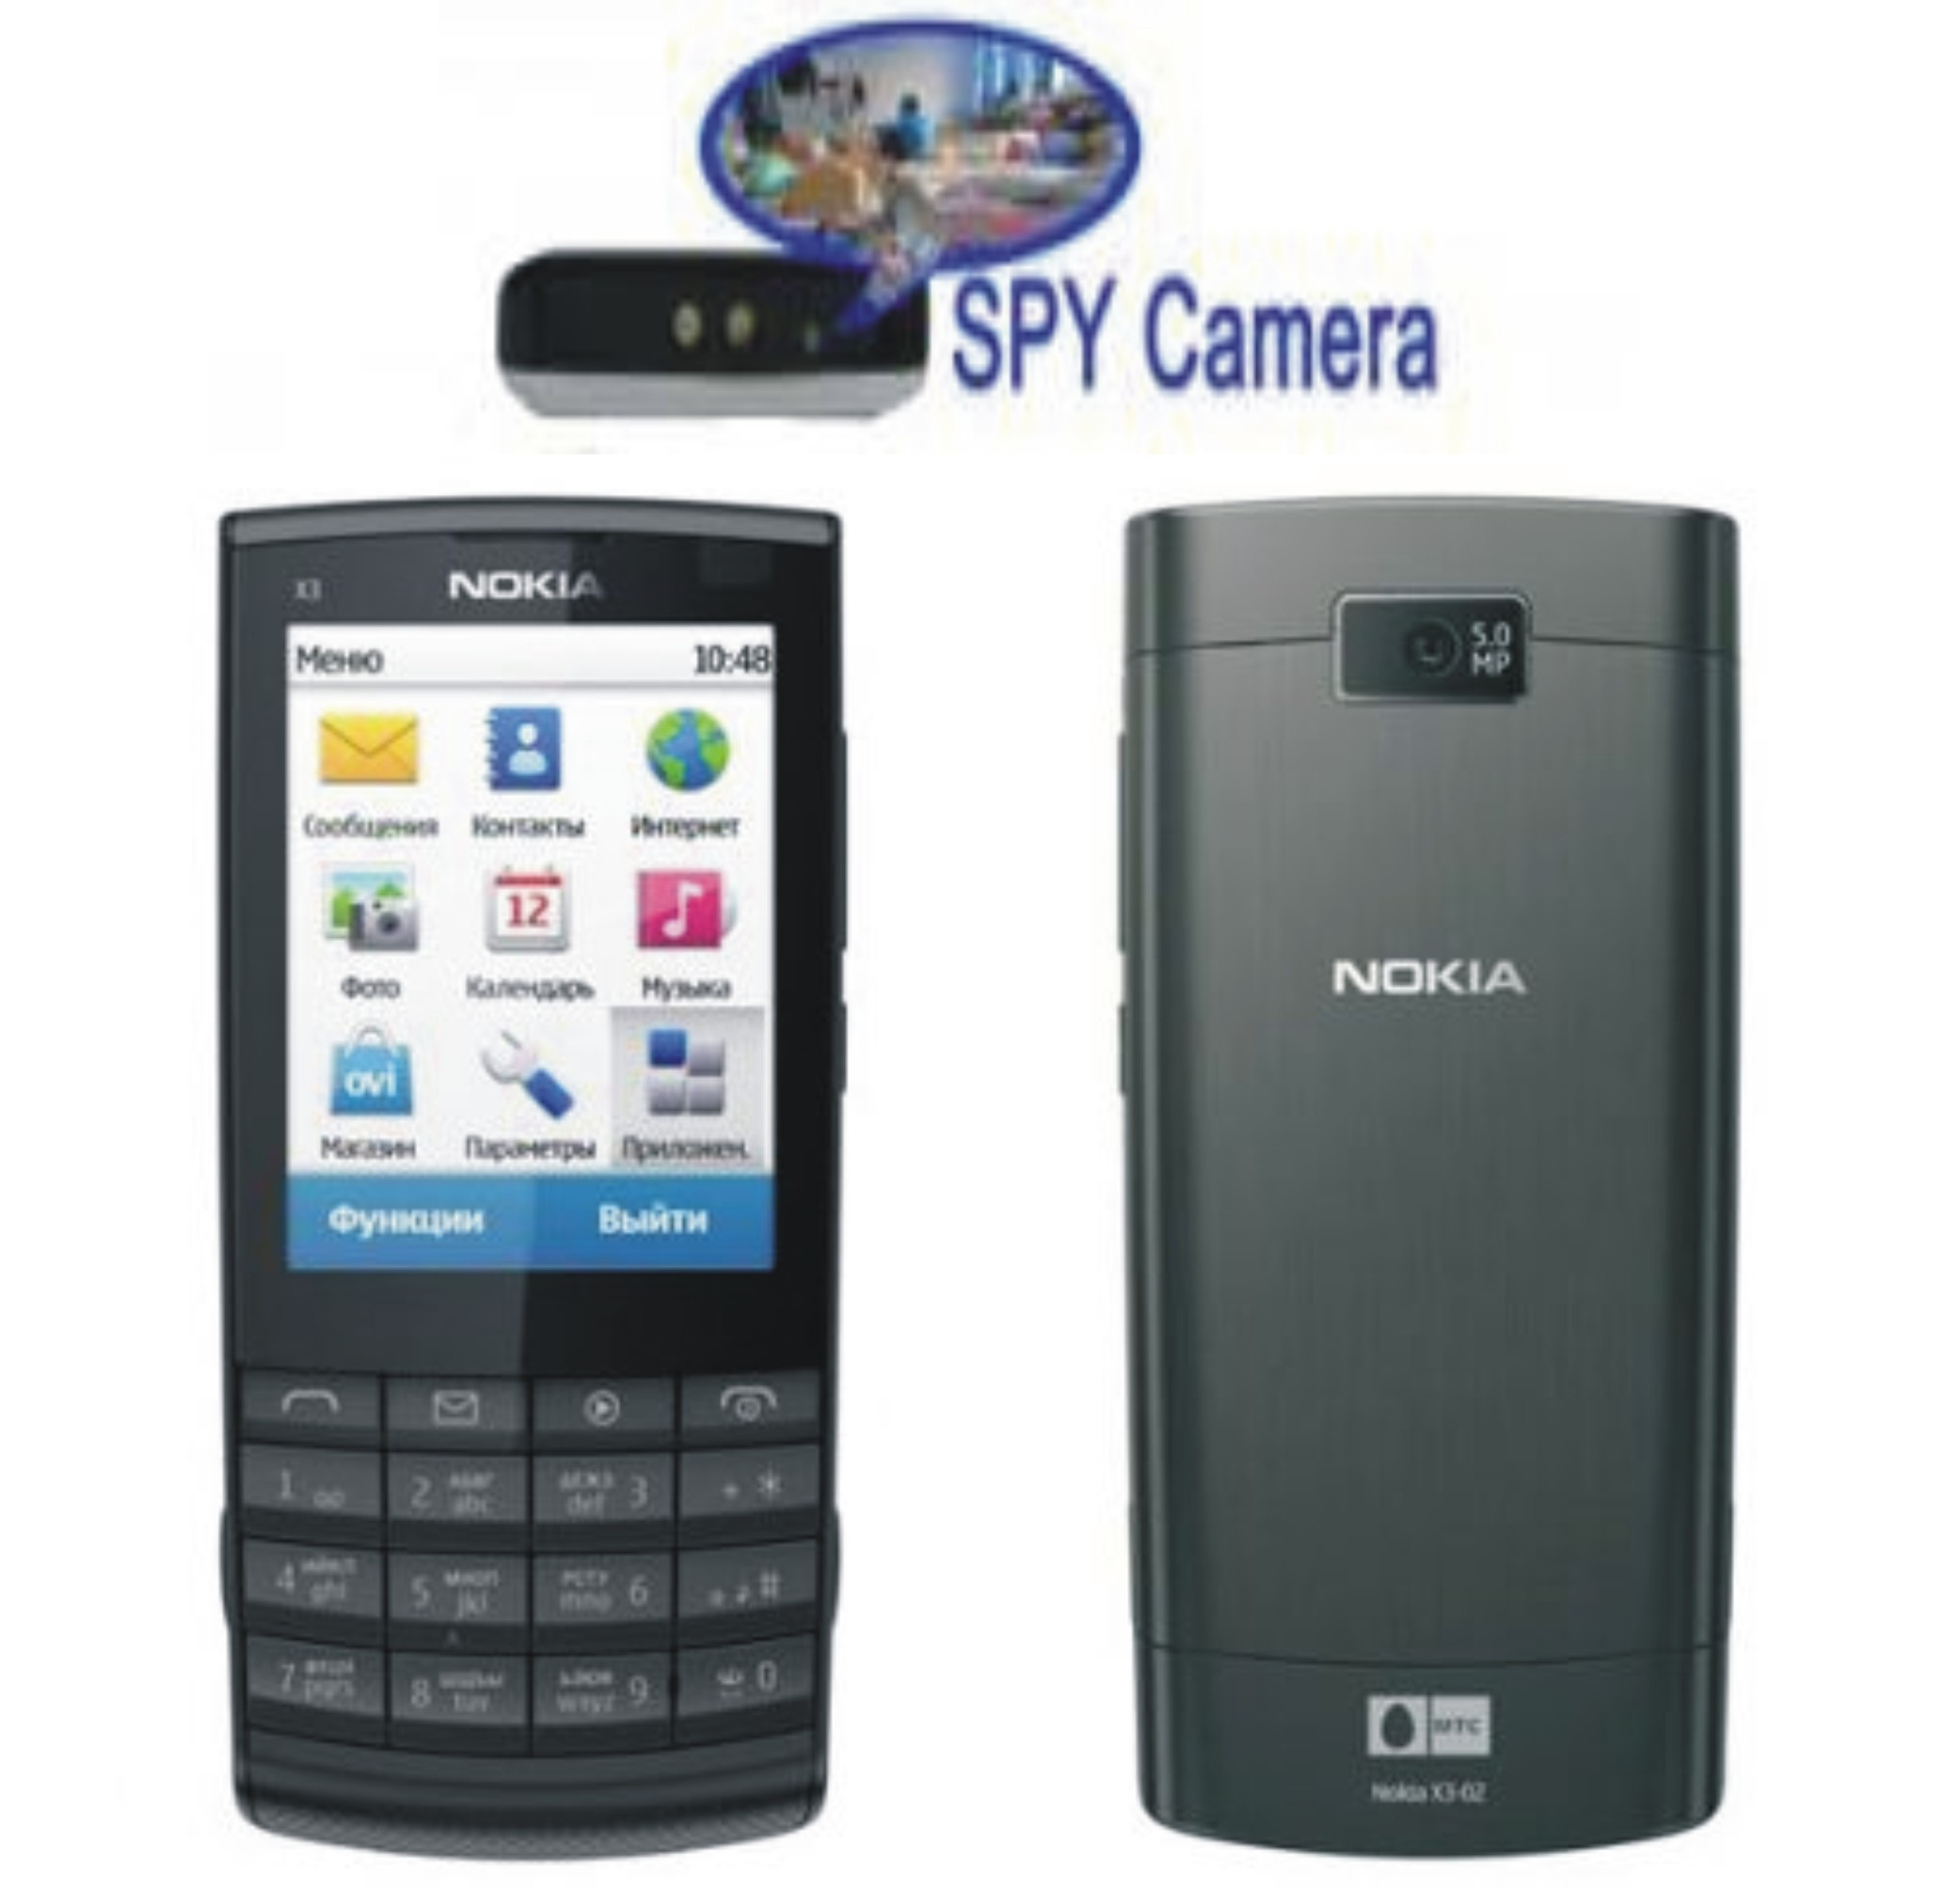 Spy Camera In Nokia Phone Touch Screen In Hugli Chuchura